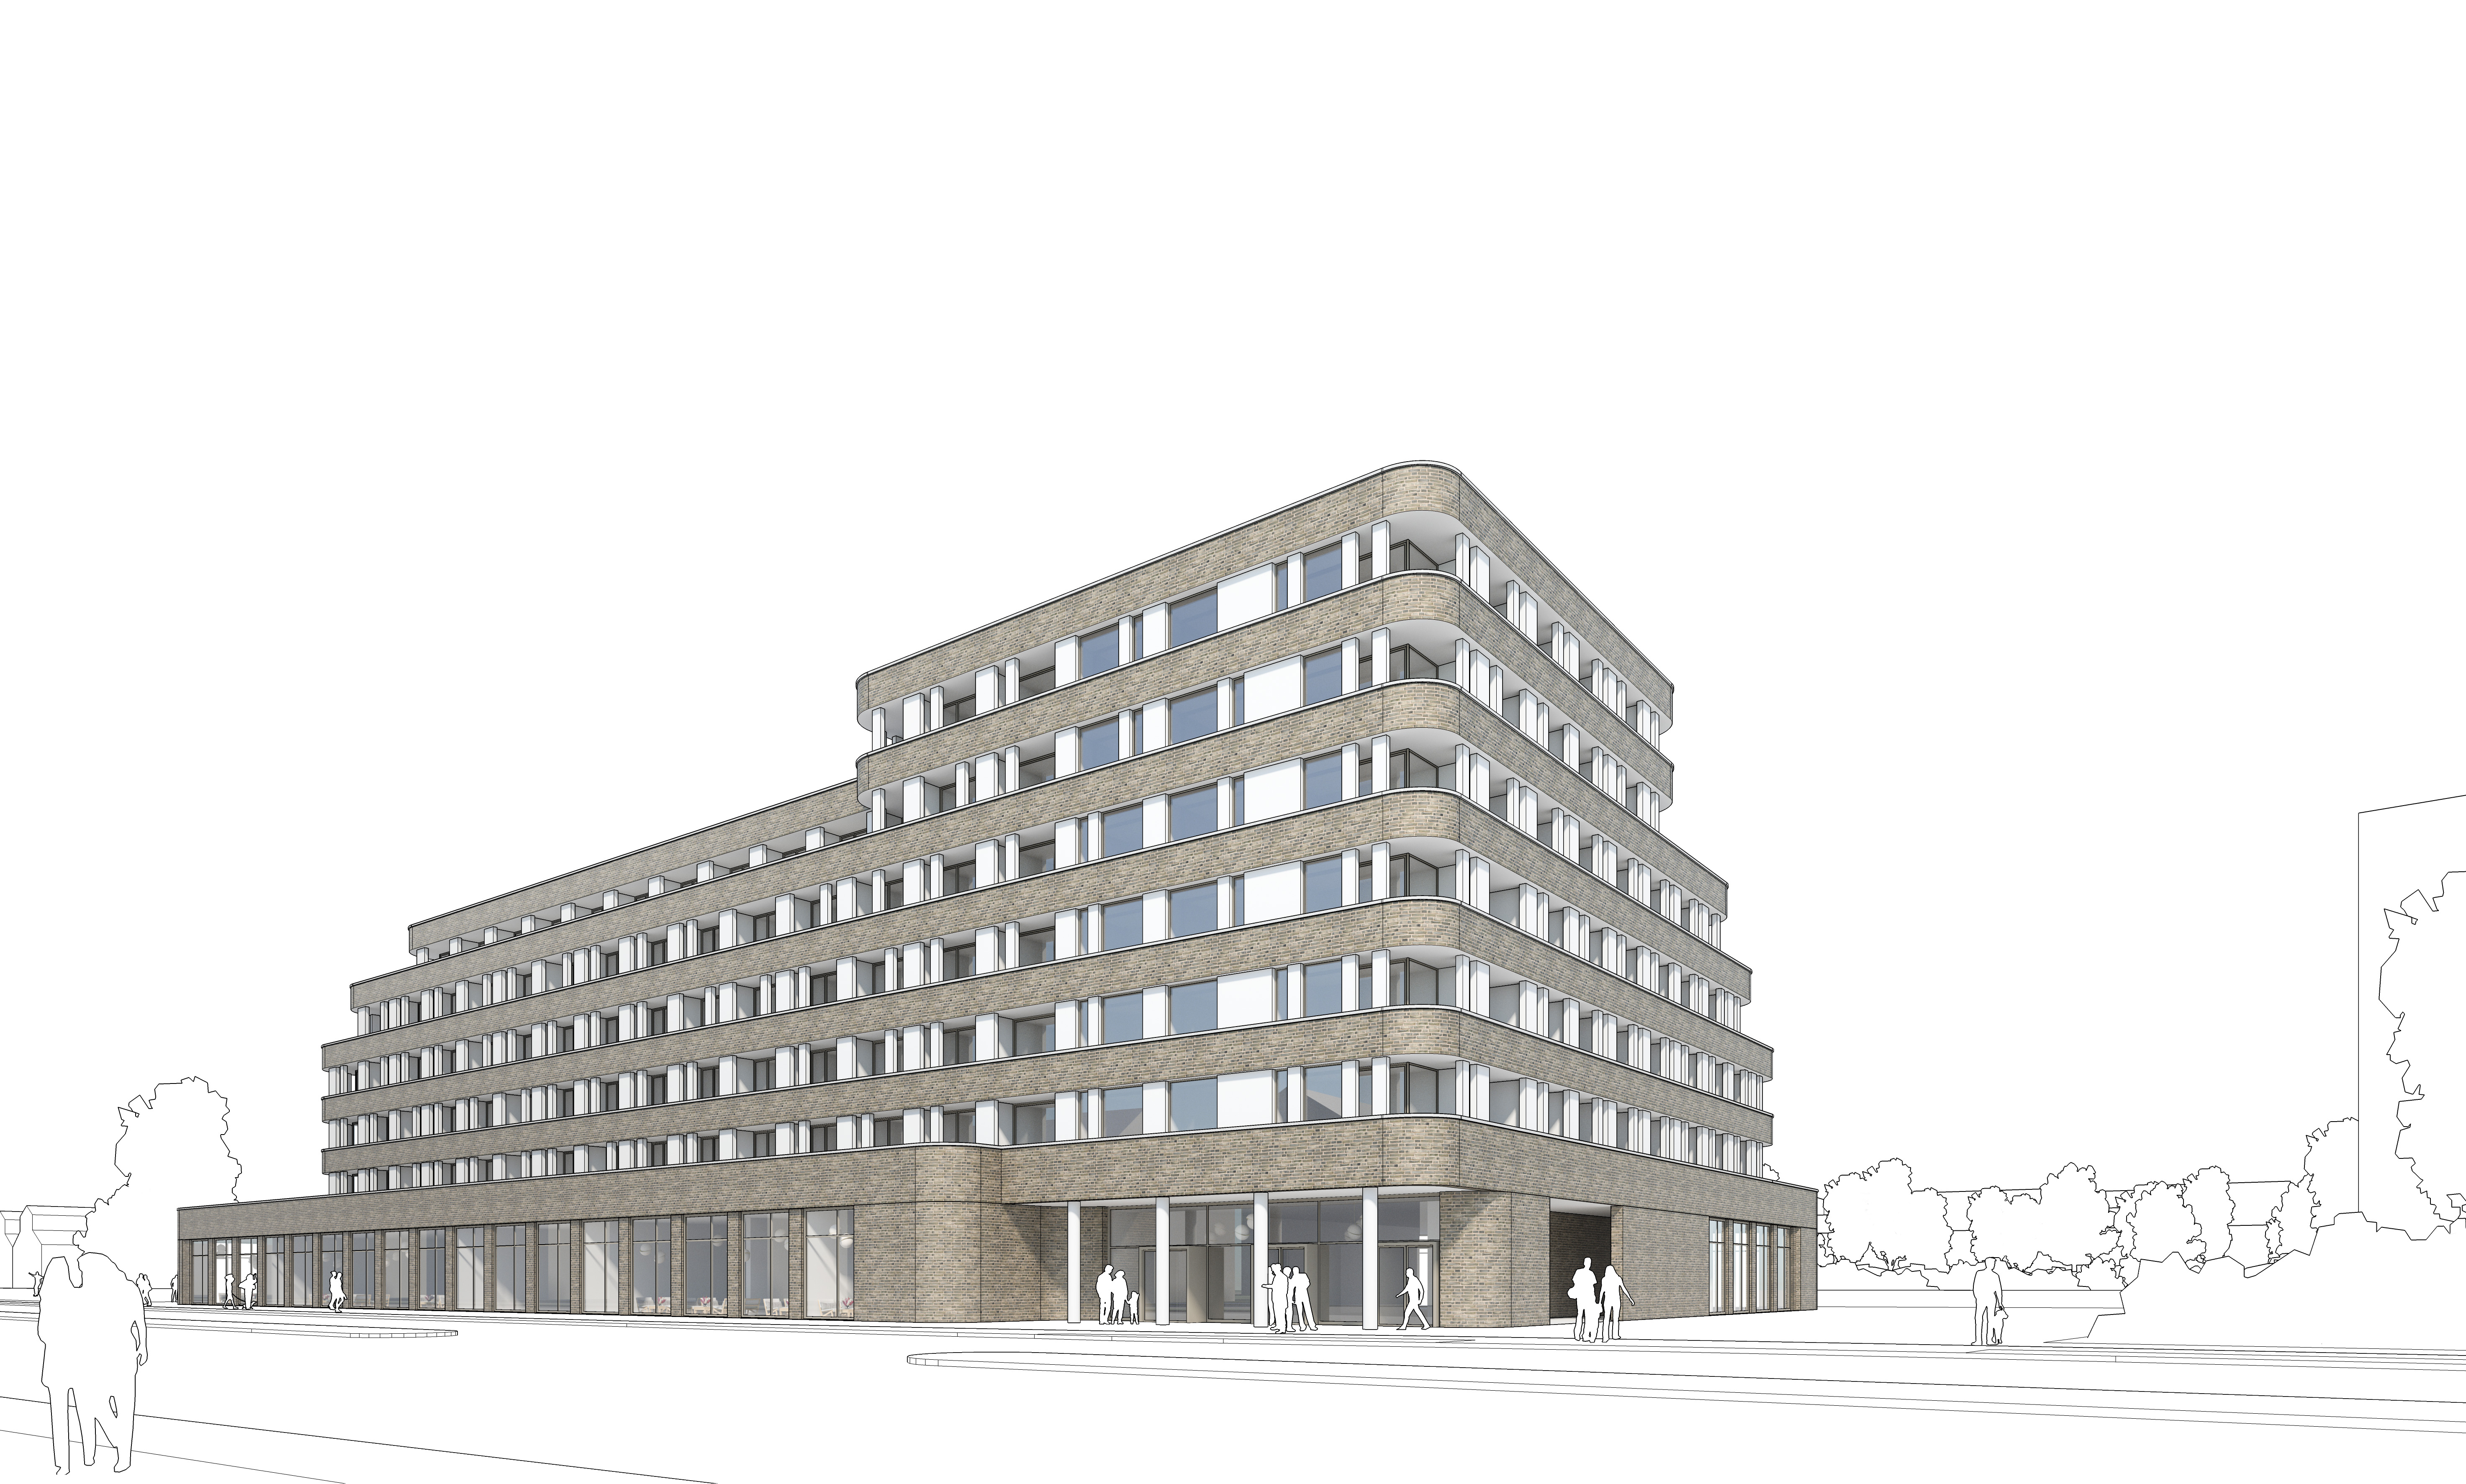 NOVUM Hotel Group secures yet another location in Germany in cooperation with F1RST Immobilien and Highstreet Development